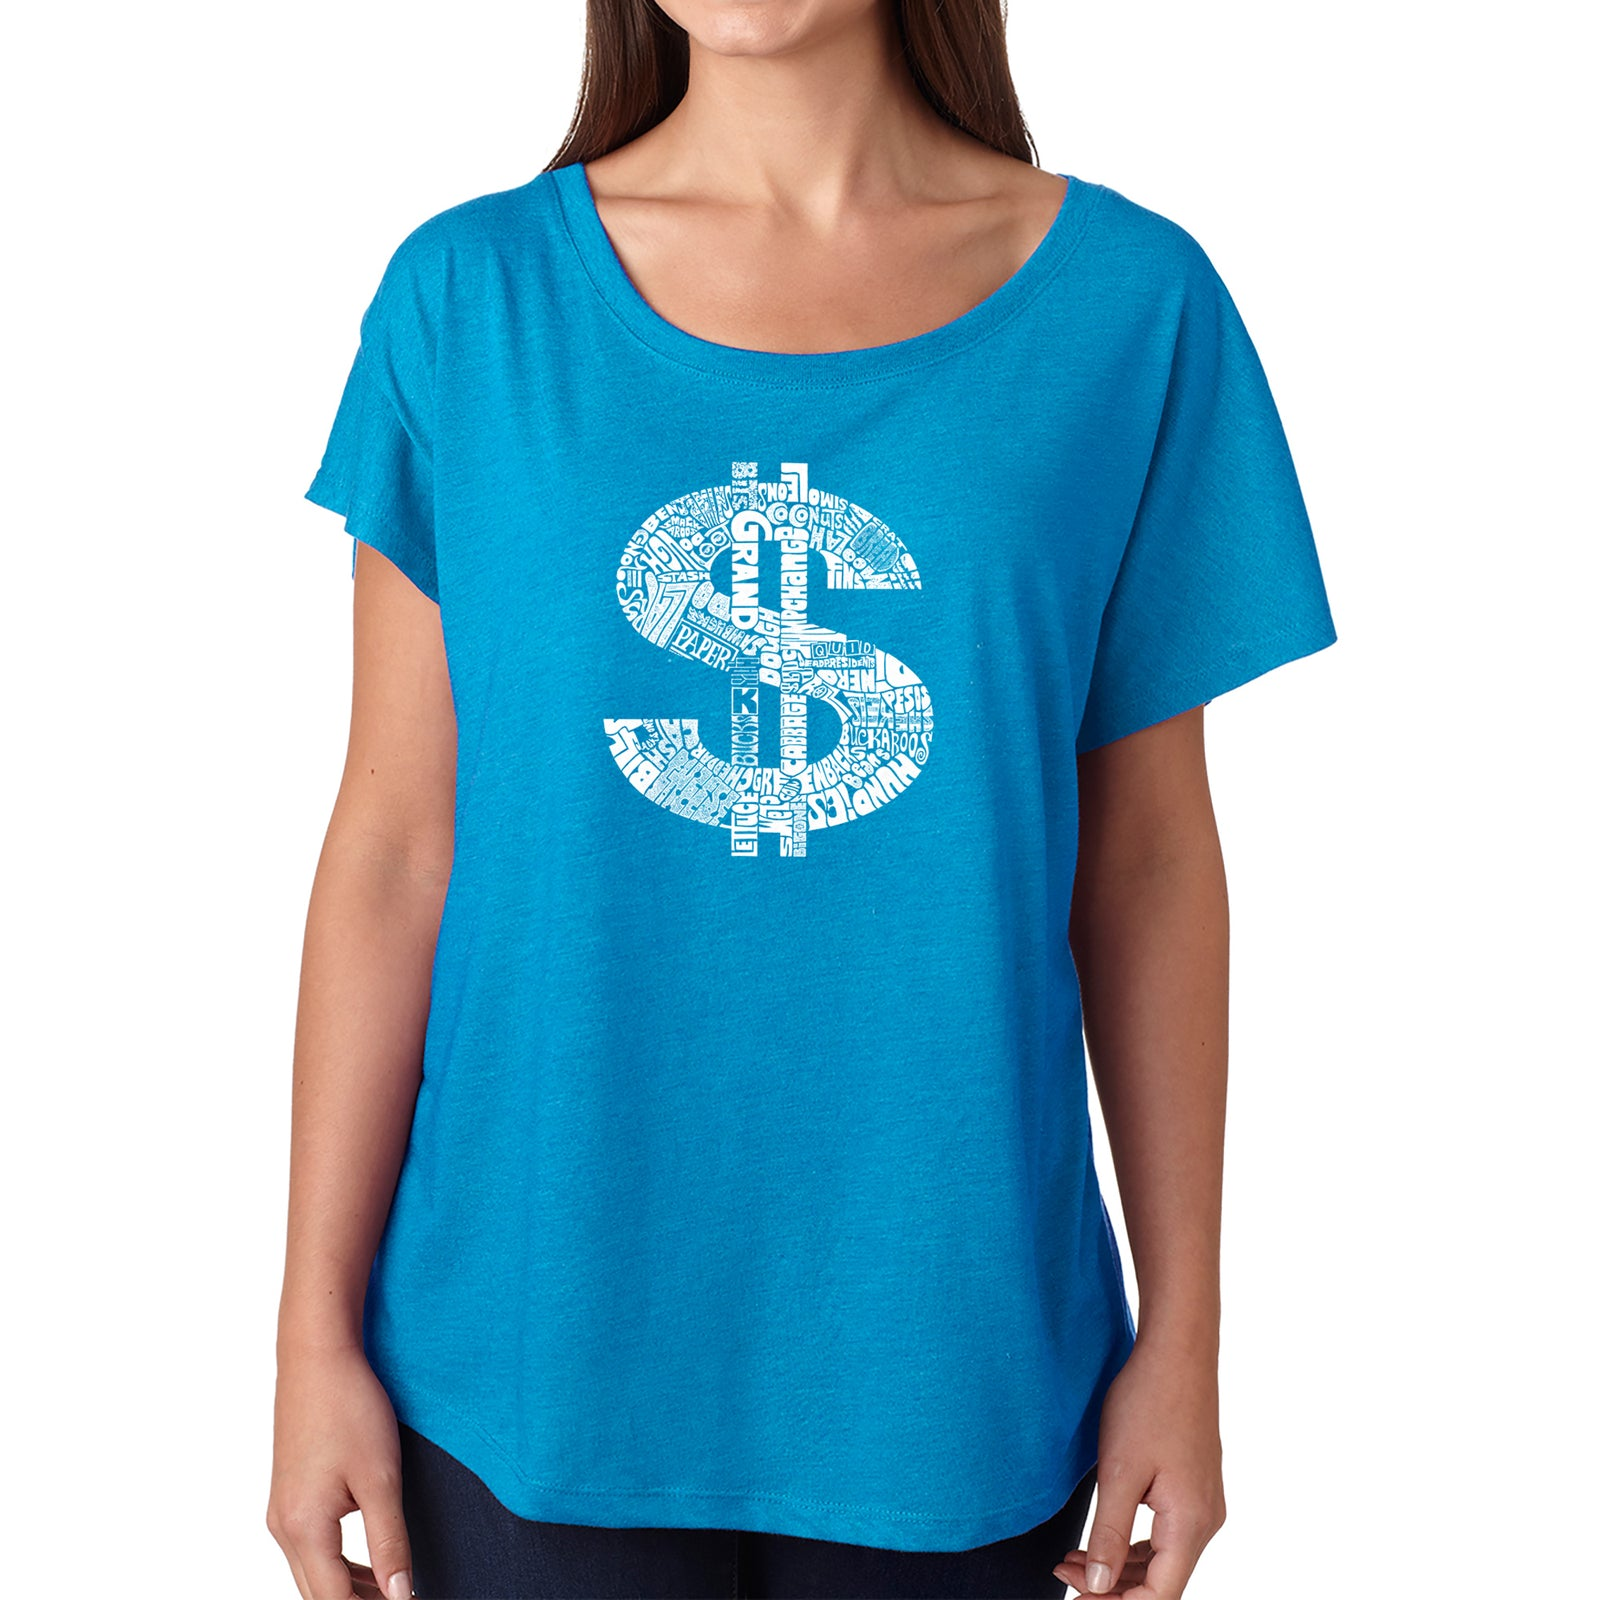 Women's Loose Fit Dolman Cut Word Art Shirt - Dollar Sign